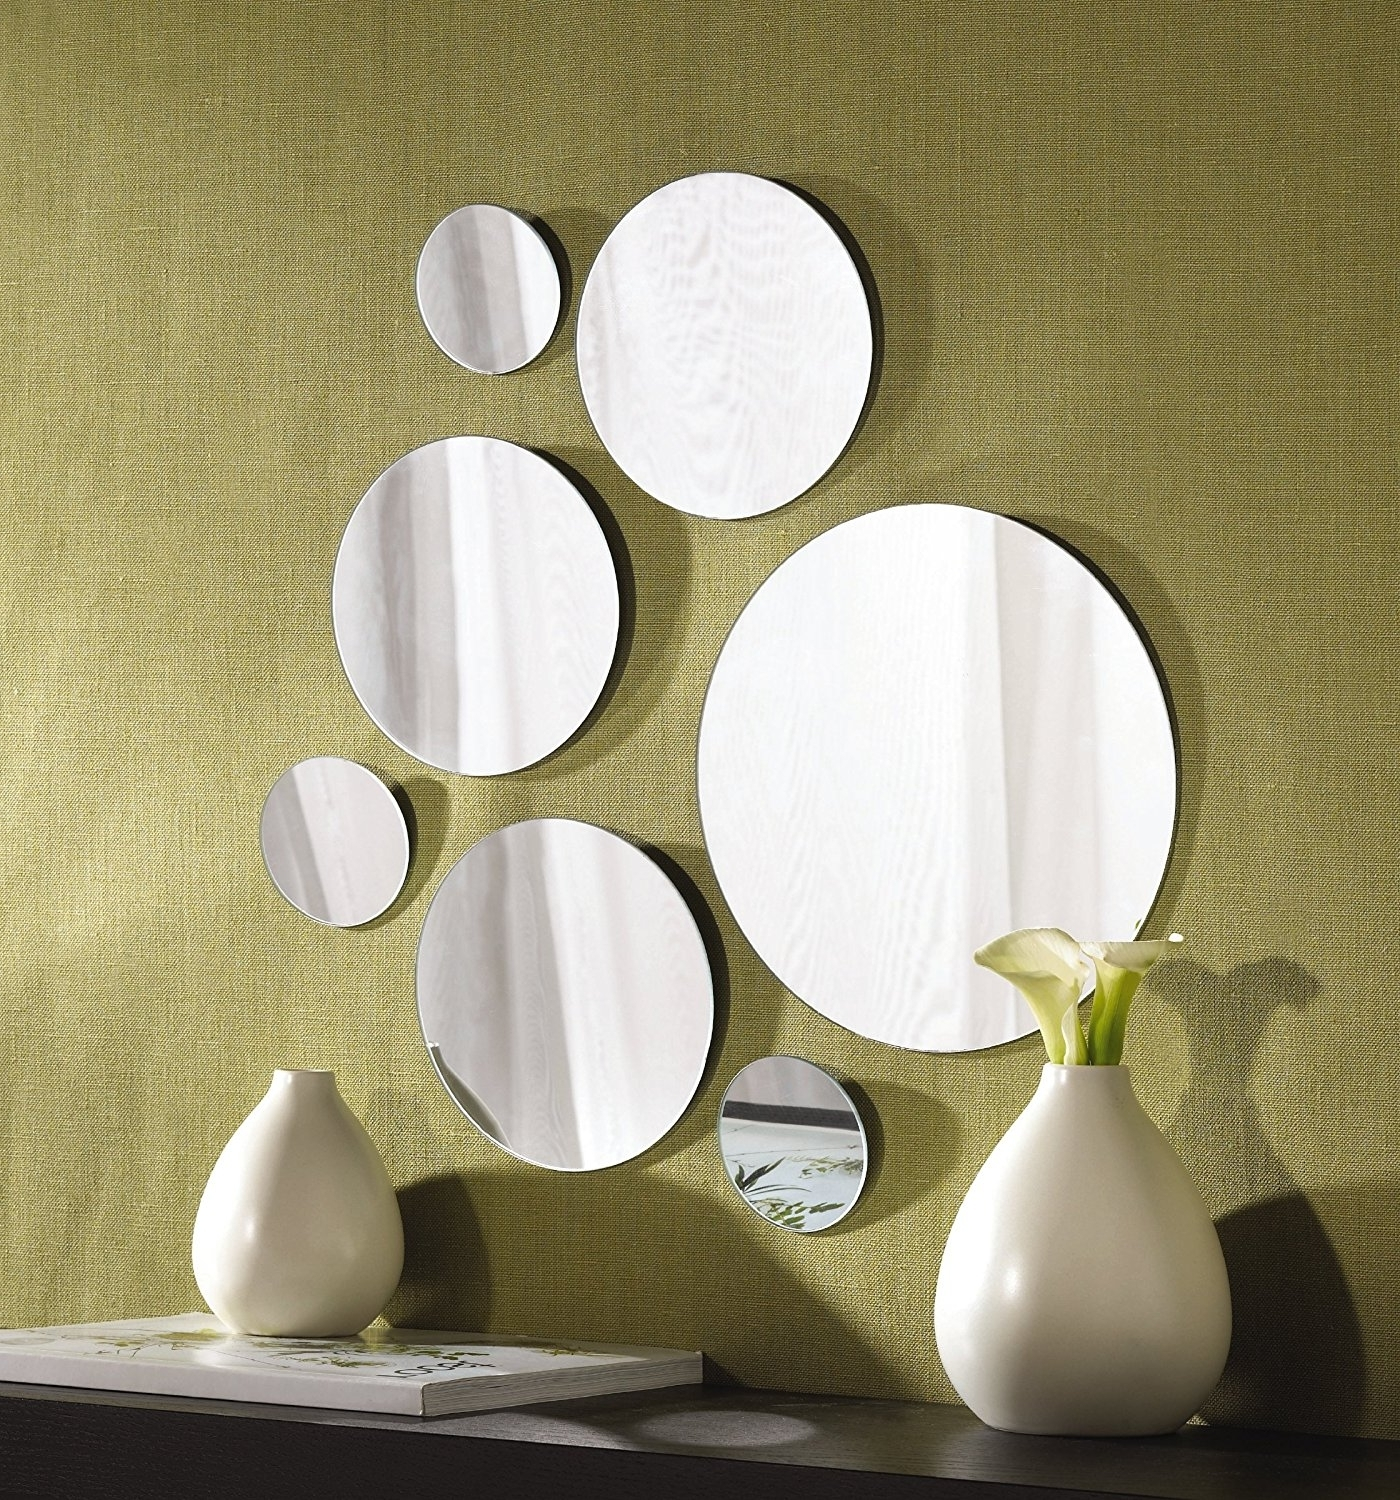 Mirror Circles Wall Art In 2017 Amazon: Elements Round Wall Mount Mirror, Set Of 7, Assorted (View 5 of 15)